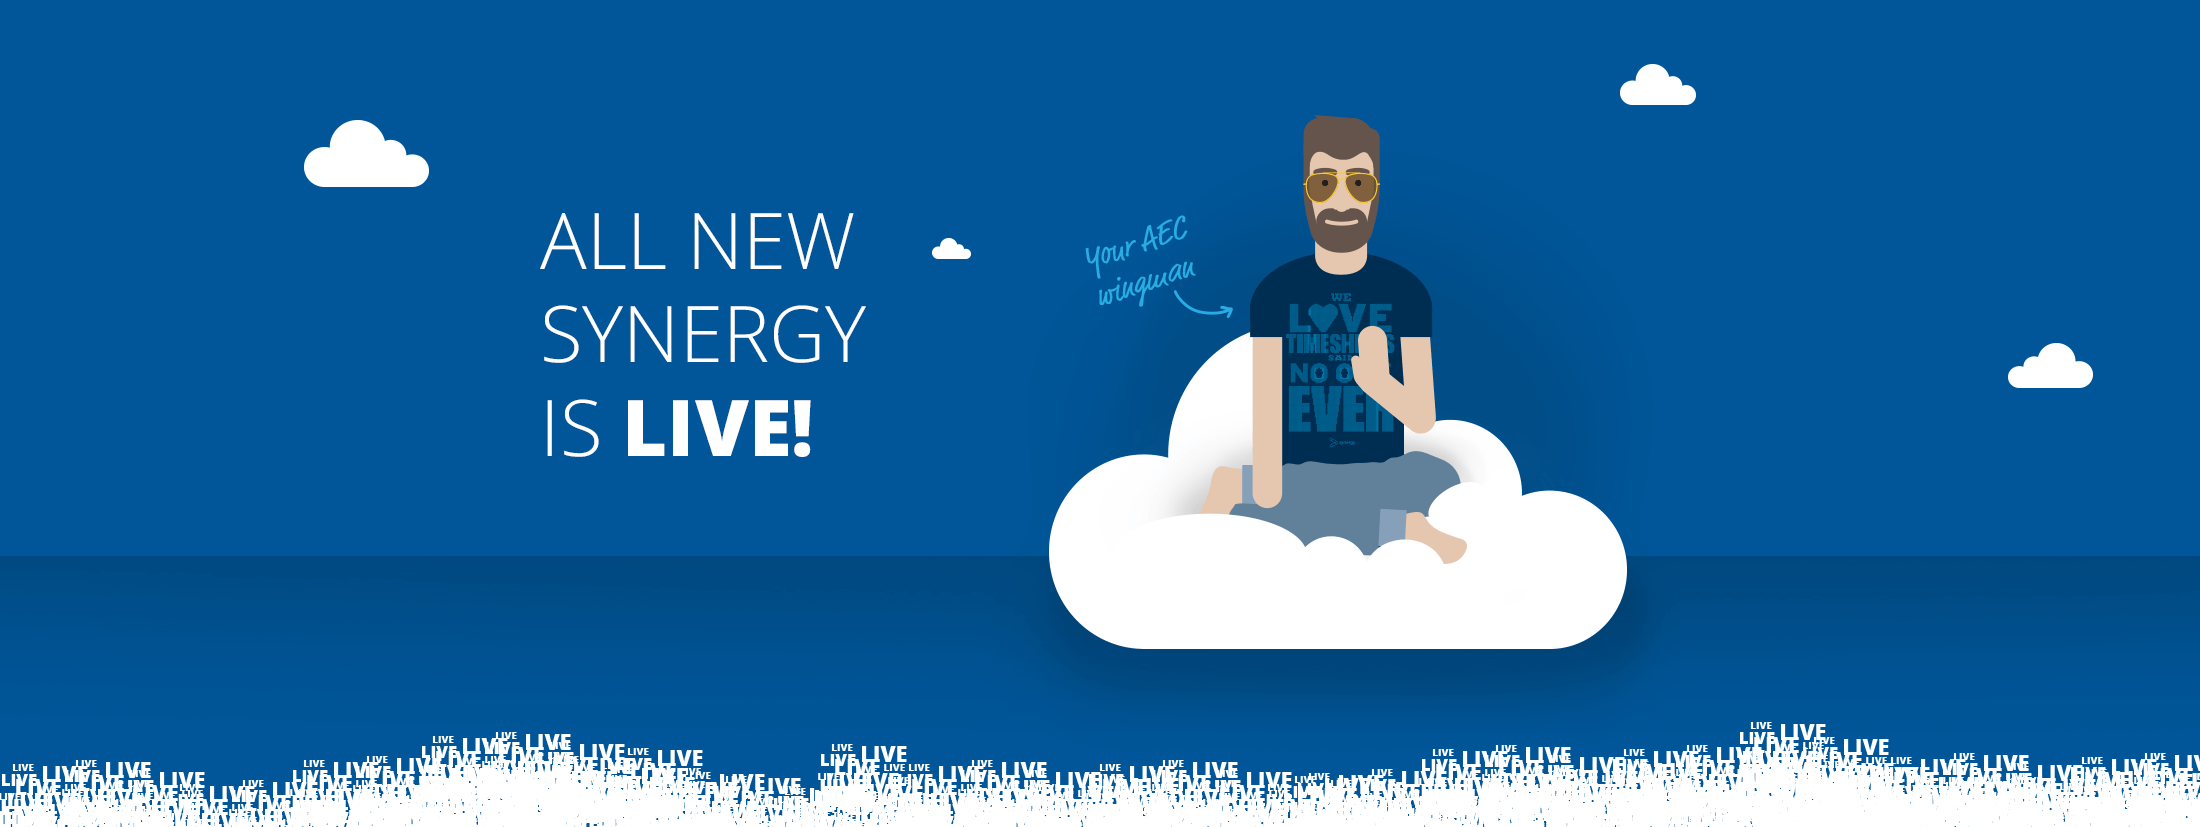 All new Synergy is live. Check out our new website and start a 30 day free trial.